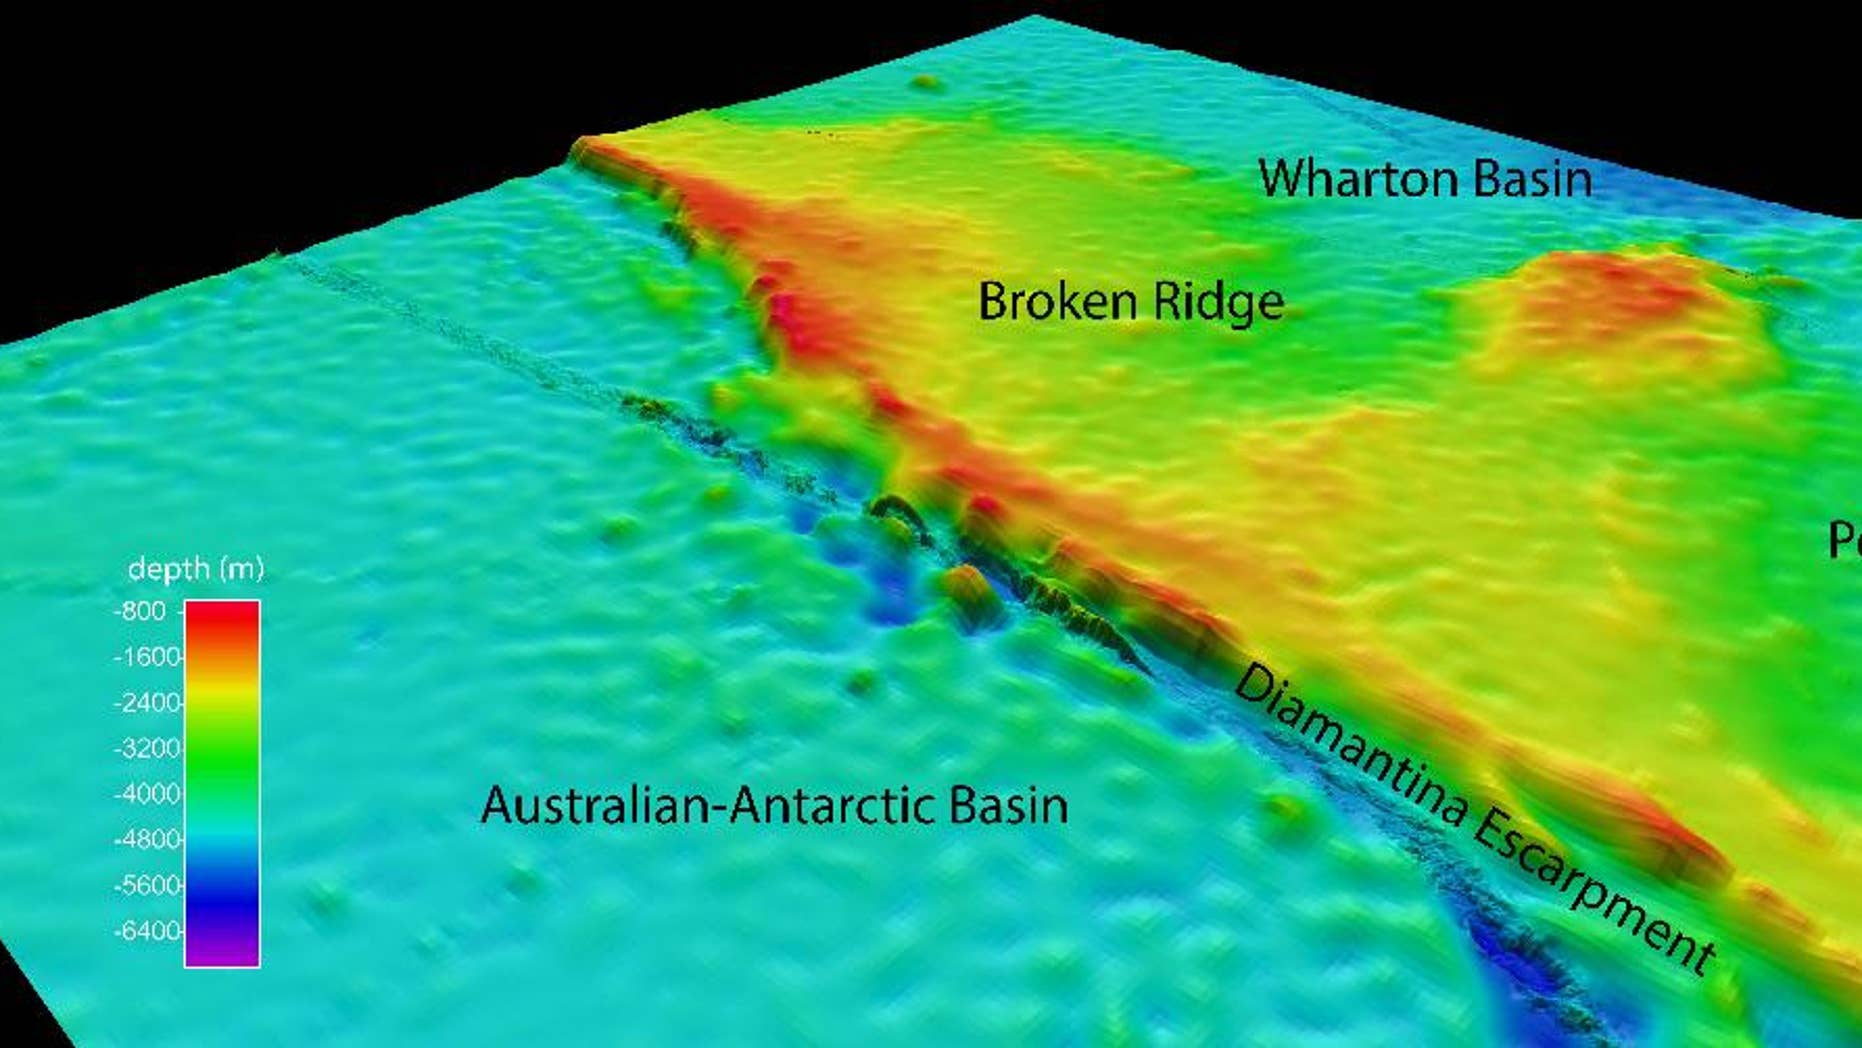 This undated graphic provided by Commonwealth of Australia (Geoscience Australia) Dr. Robin Beaman, James Cook University, shows the North-westerly view of the search area for the missing Malaysian Airlines Flight 370 at Broken Ridge, south-eastern Indian Ocean, which shows the Diamantina Escarpment dropping from about 800 meters to over 5000 meters in depth. Two miles under the sea where satellites and planes are looking for debris from the missing Malaysian jet, the ocean floor is cold, dark, covered in a squishy muck of dead plankton and - in a potential break for the search - mostly flat. The troubling exception is a steep, rocky drop ending in a deep trench. The sea floor in this swath of the Indian Ocean is dominated by a substantial underwater plateau known as Broken Ridge, where the geography would probably not hinder efforts to find the main body of the jet that disappeared with 239 people on board three weeks ago, according to seabed experts who have studied the area. (AP Photo/Commonwealth of Australia (Geoscience Australia) Dr Robin Beaman, James Cook University)